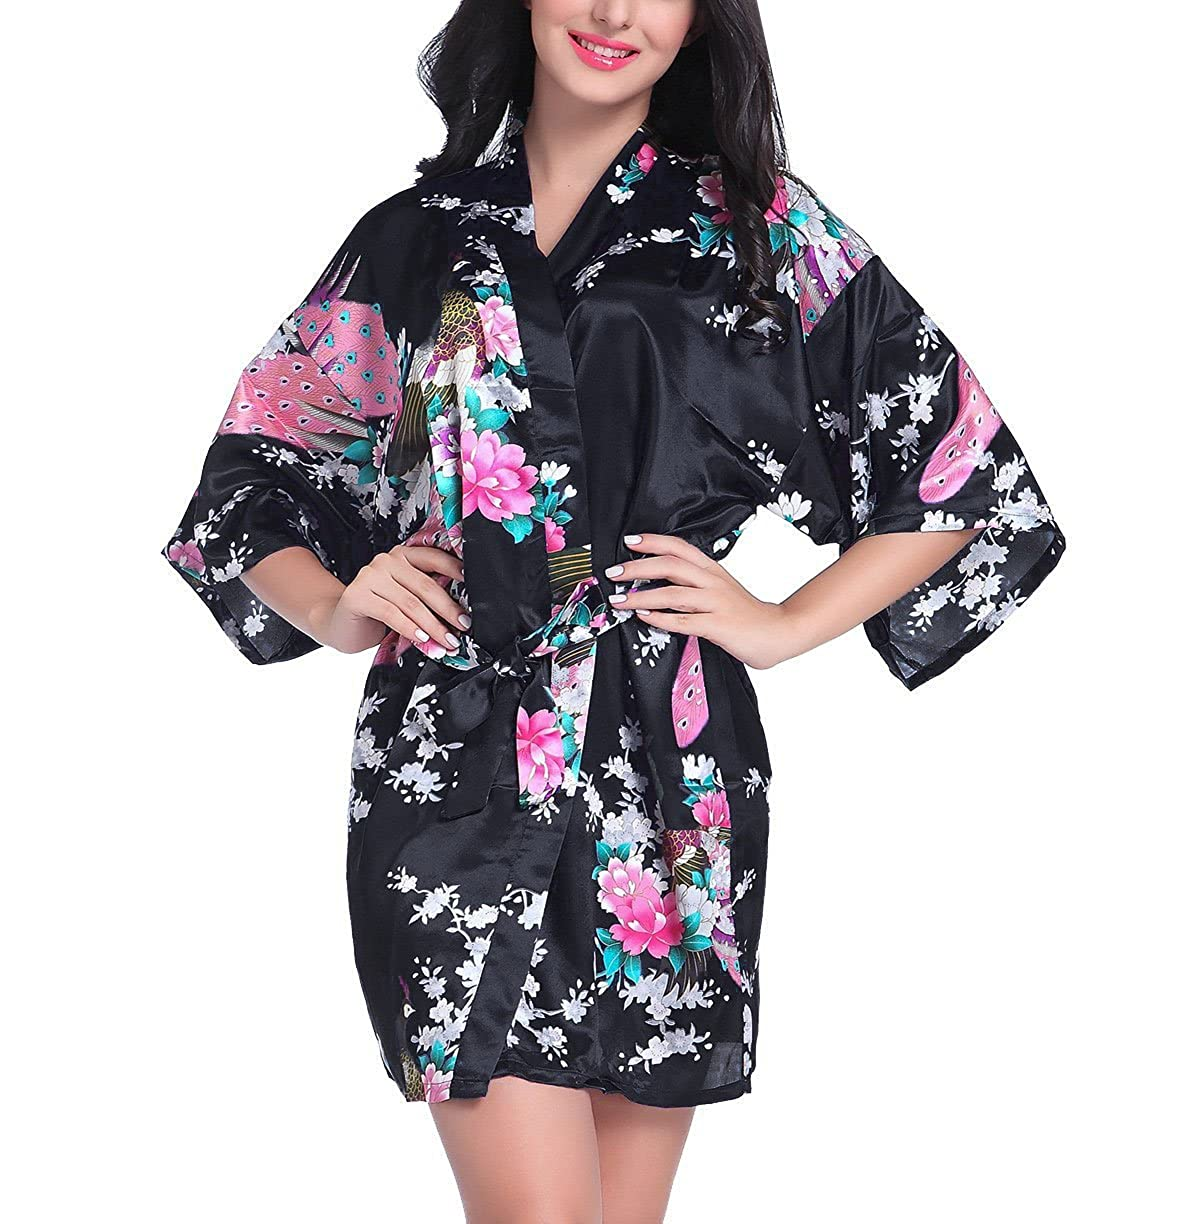 fcc1d8ac46 Top 10 wholesale Kimono Robe Dressing Gown - Chinabrands.com